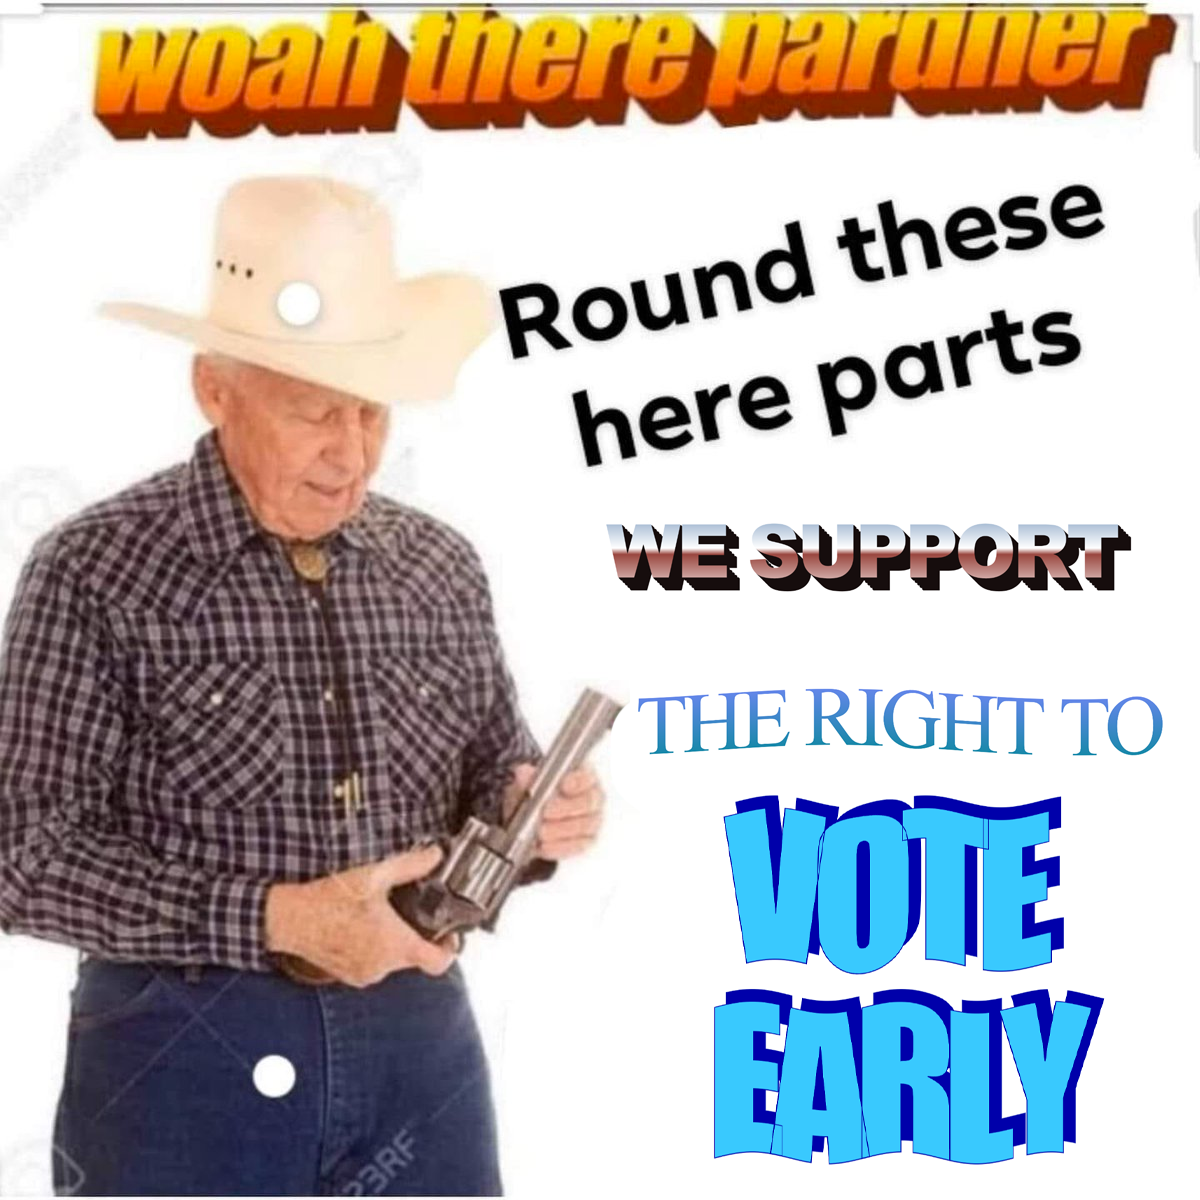 removing people from a voting list isnt very cowboy